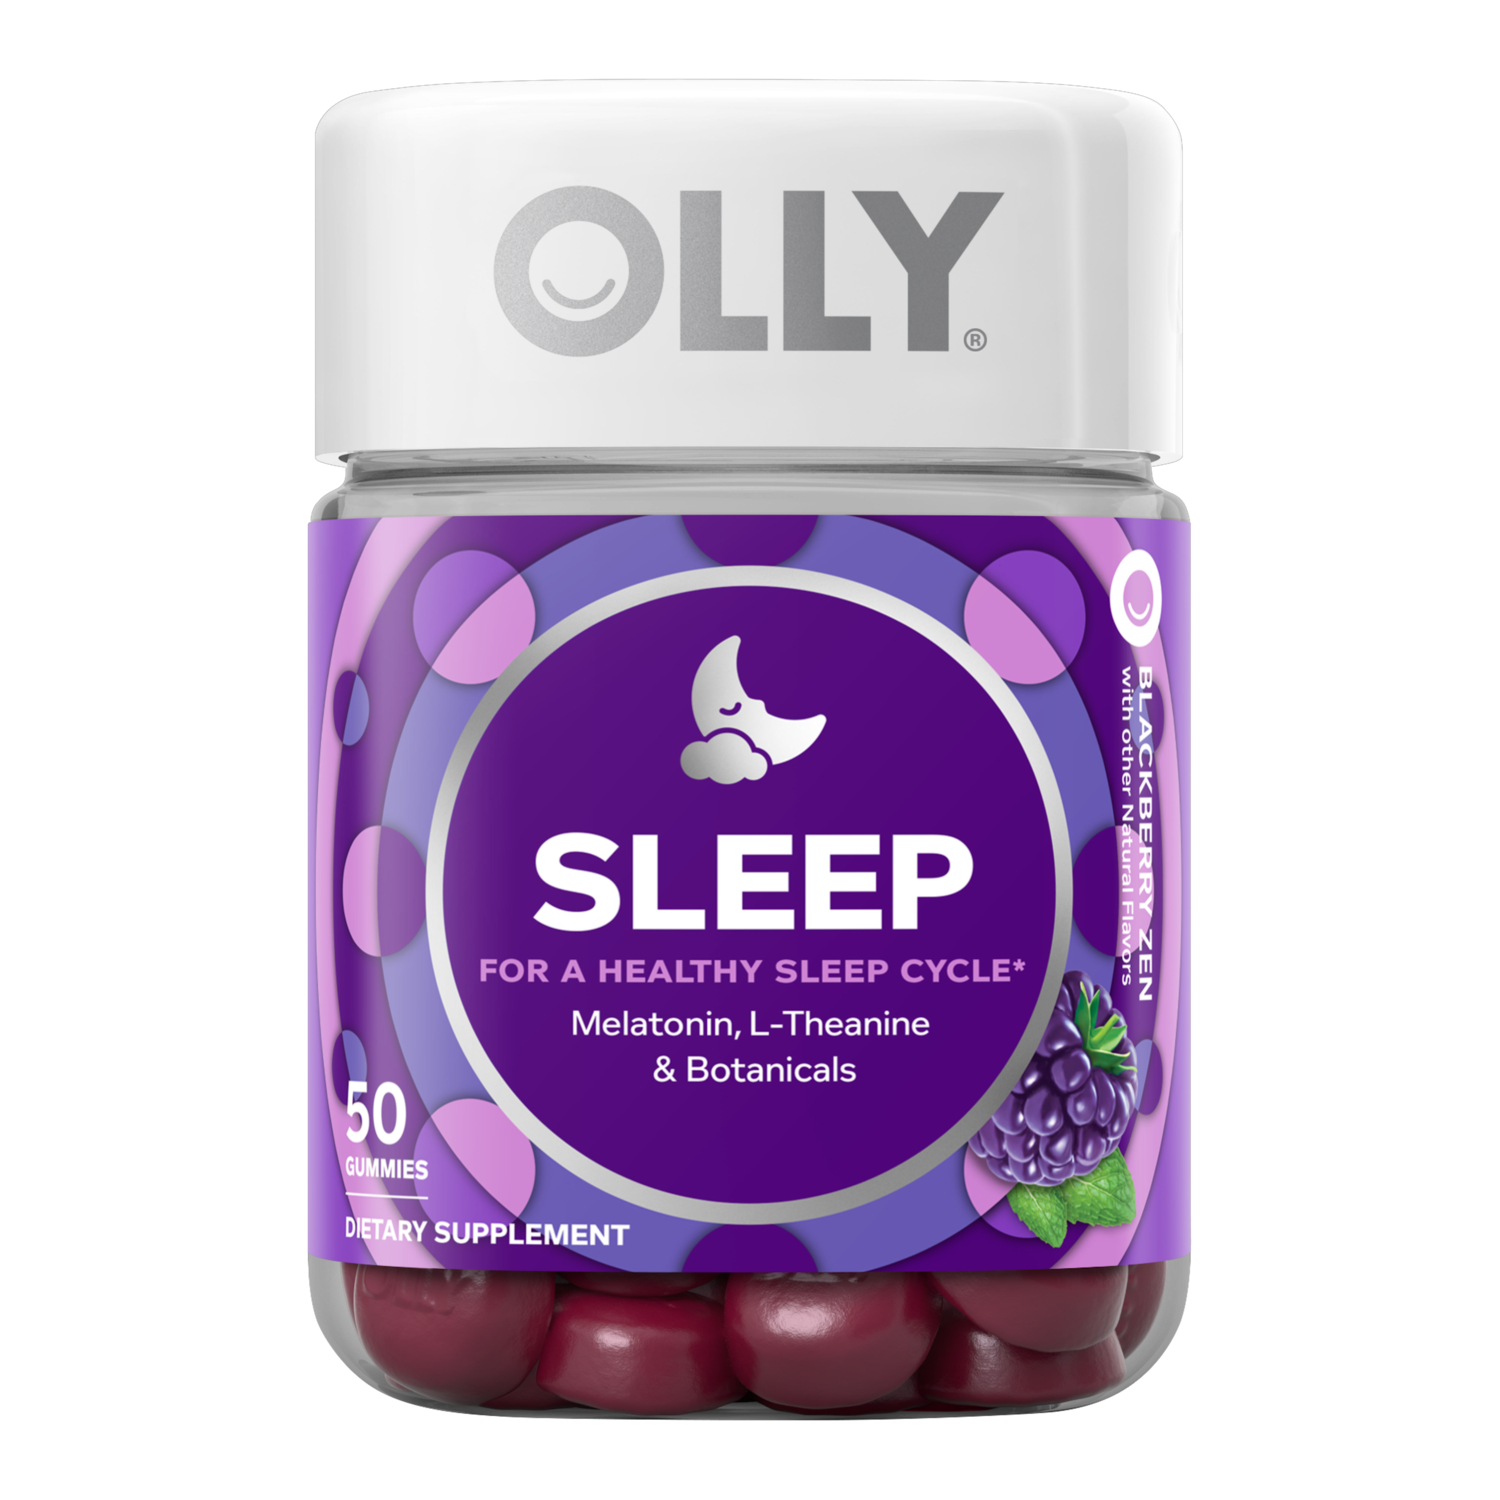 OLLY SLEEP PACK FRONT